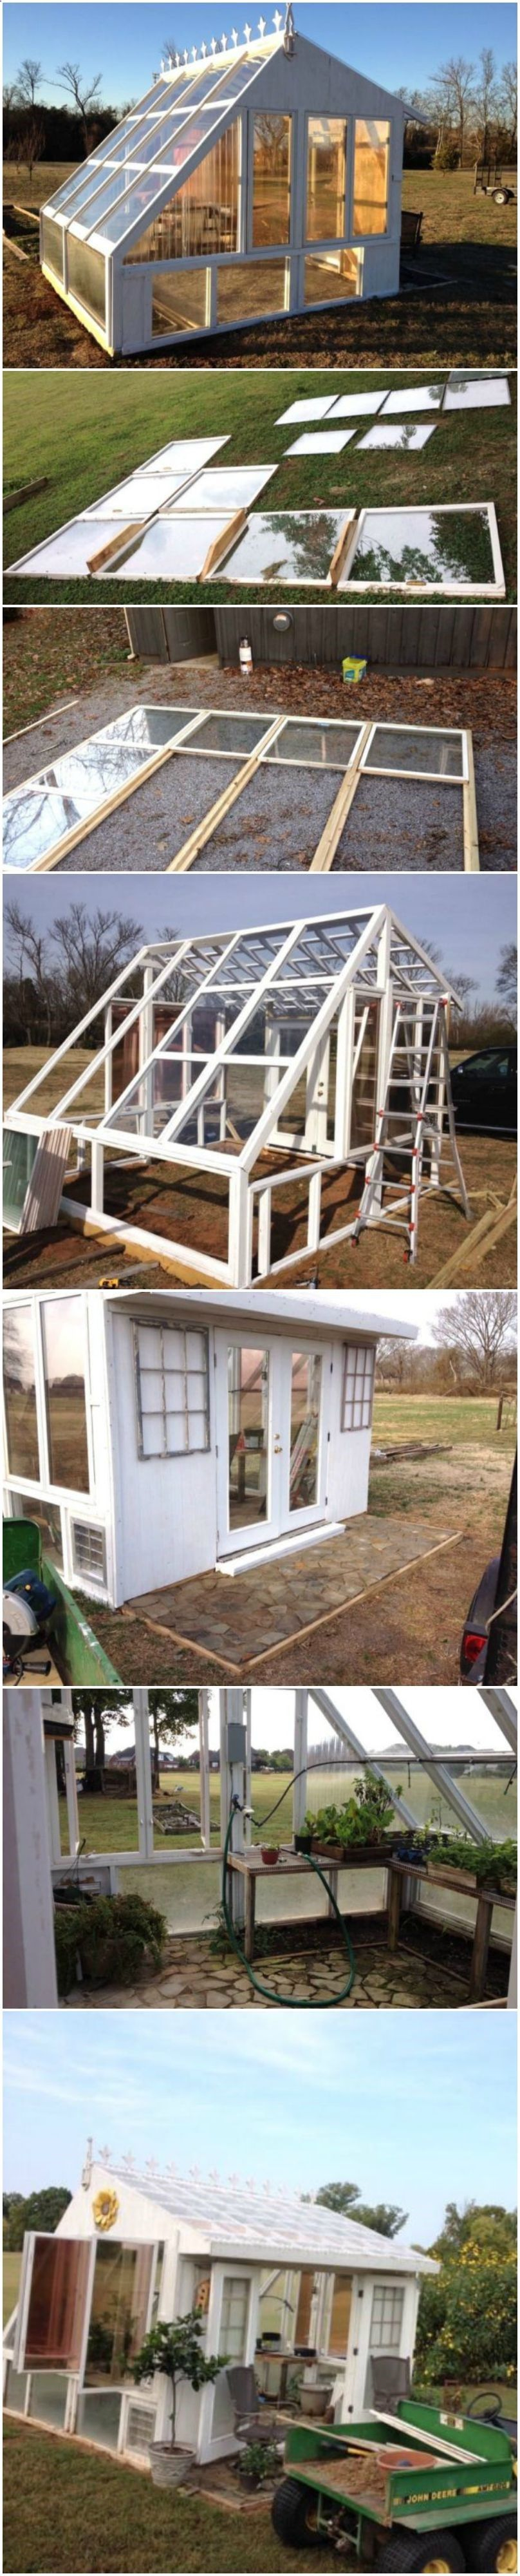 Shed Diy  He Builds A Greenhouse From Old Windows